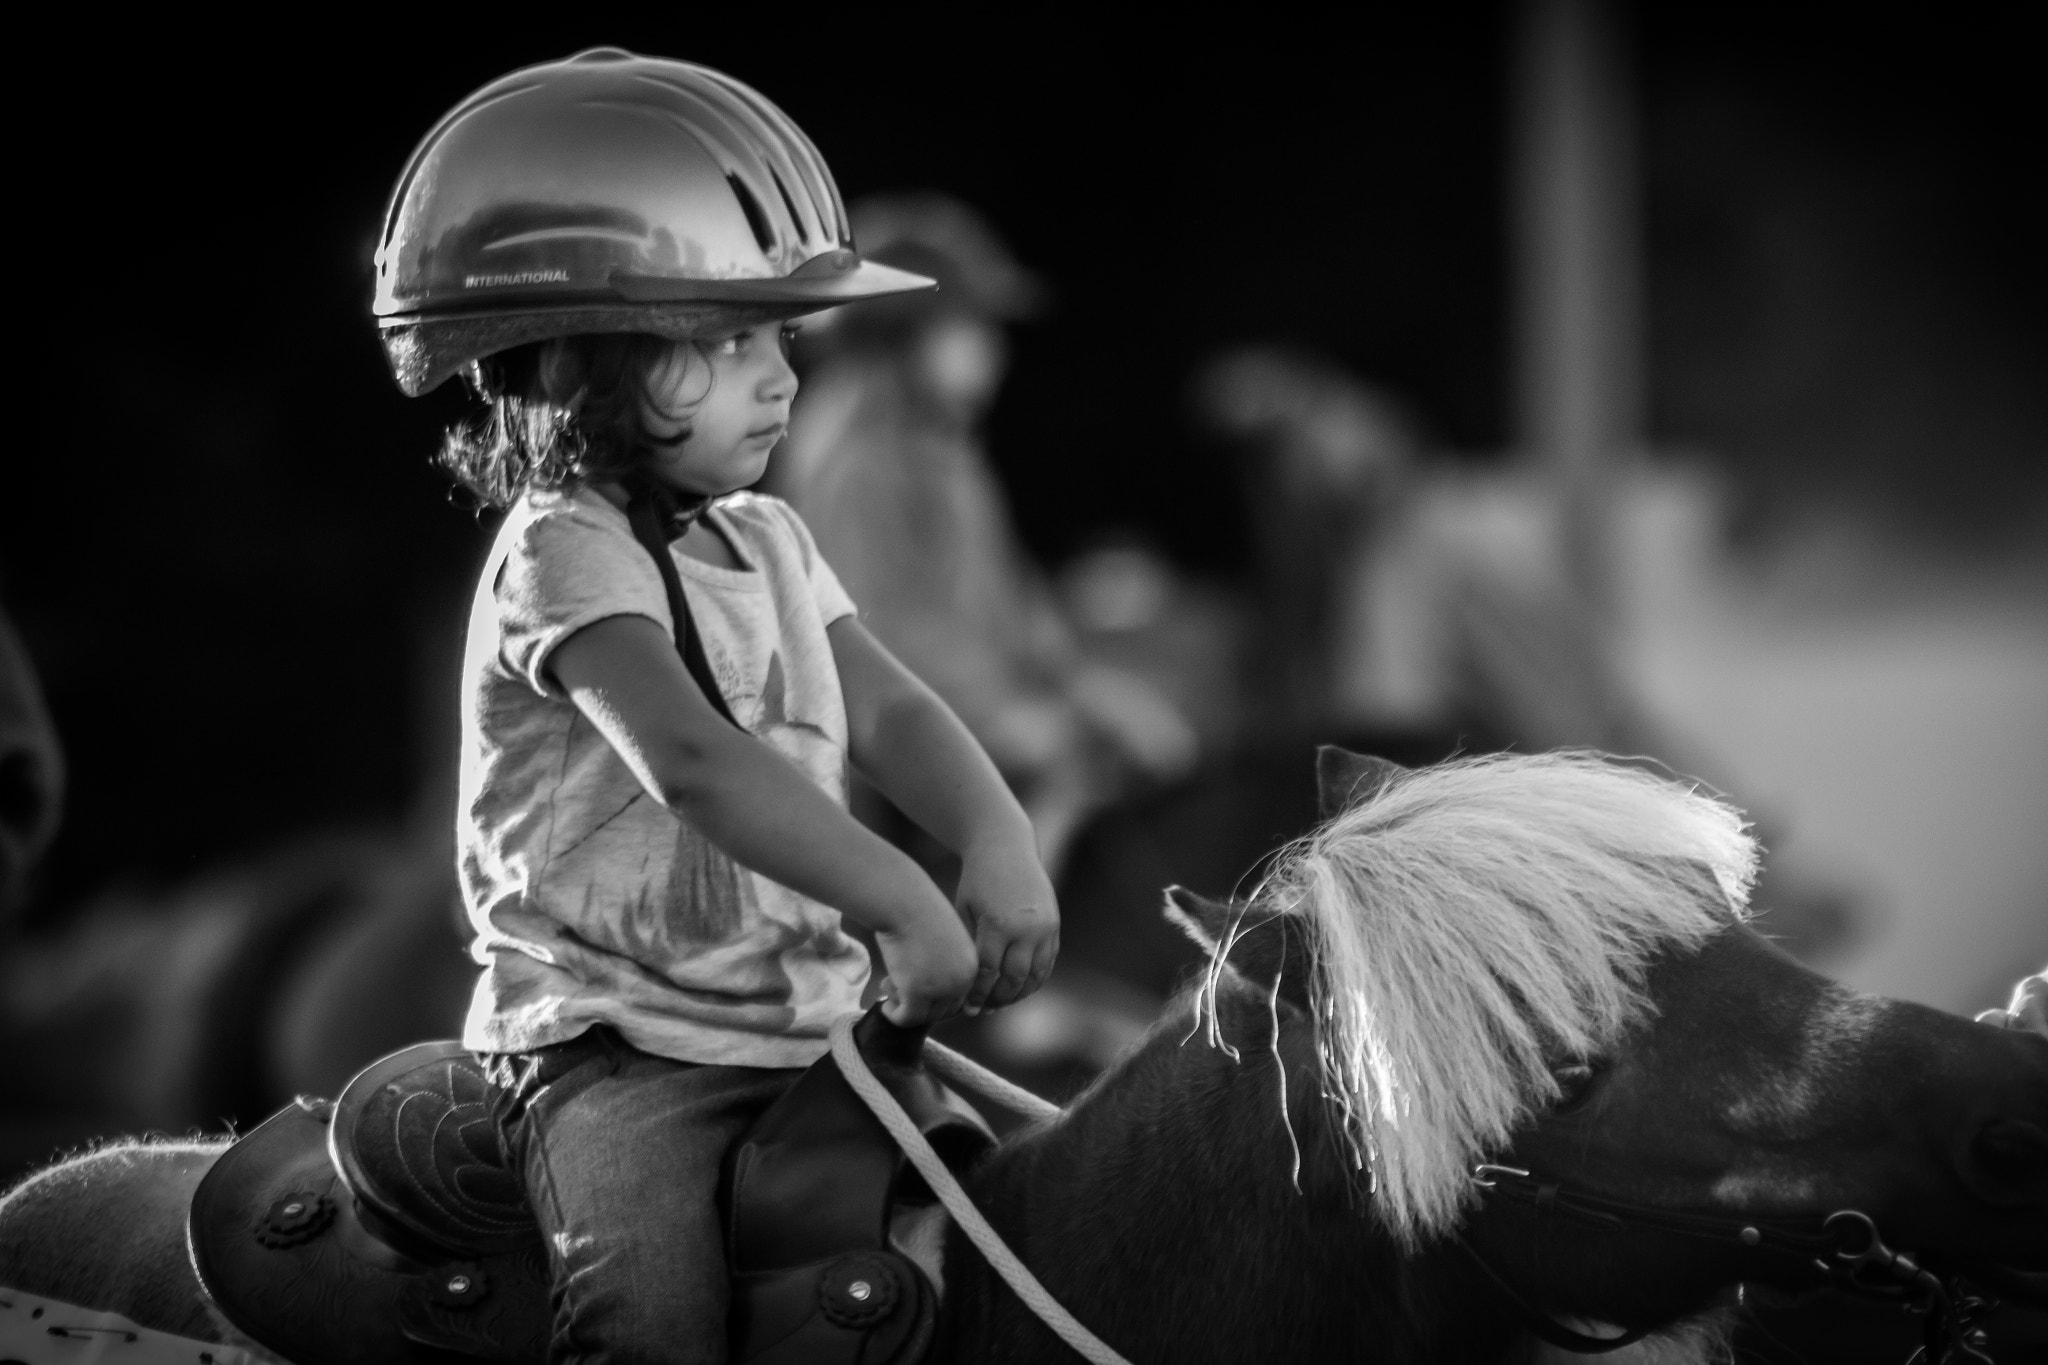 Photograph Little Girl On A Little Horse by Steve M DiPolito Imaging on 500px